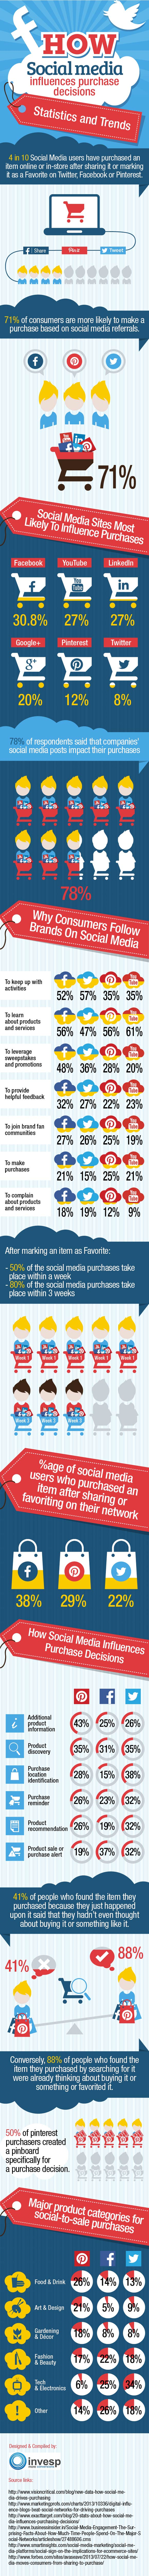 How Social Media Influences Purchase Decisions image social media purchase decisions2